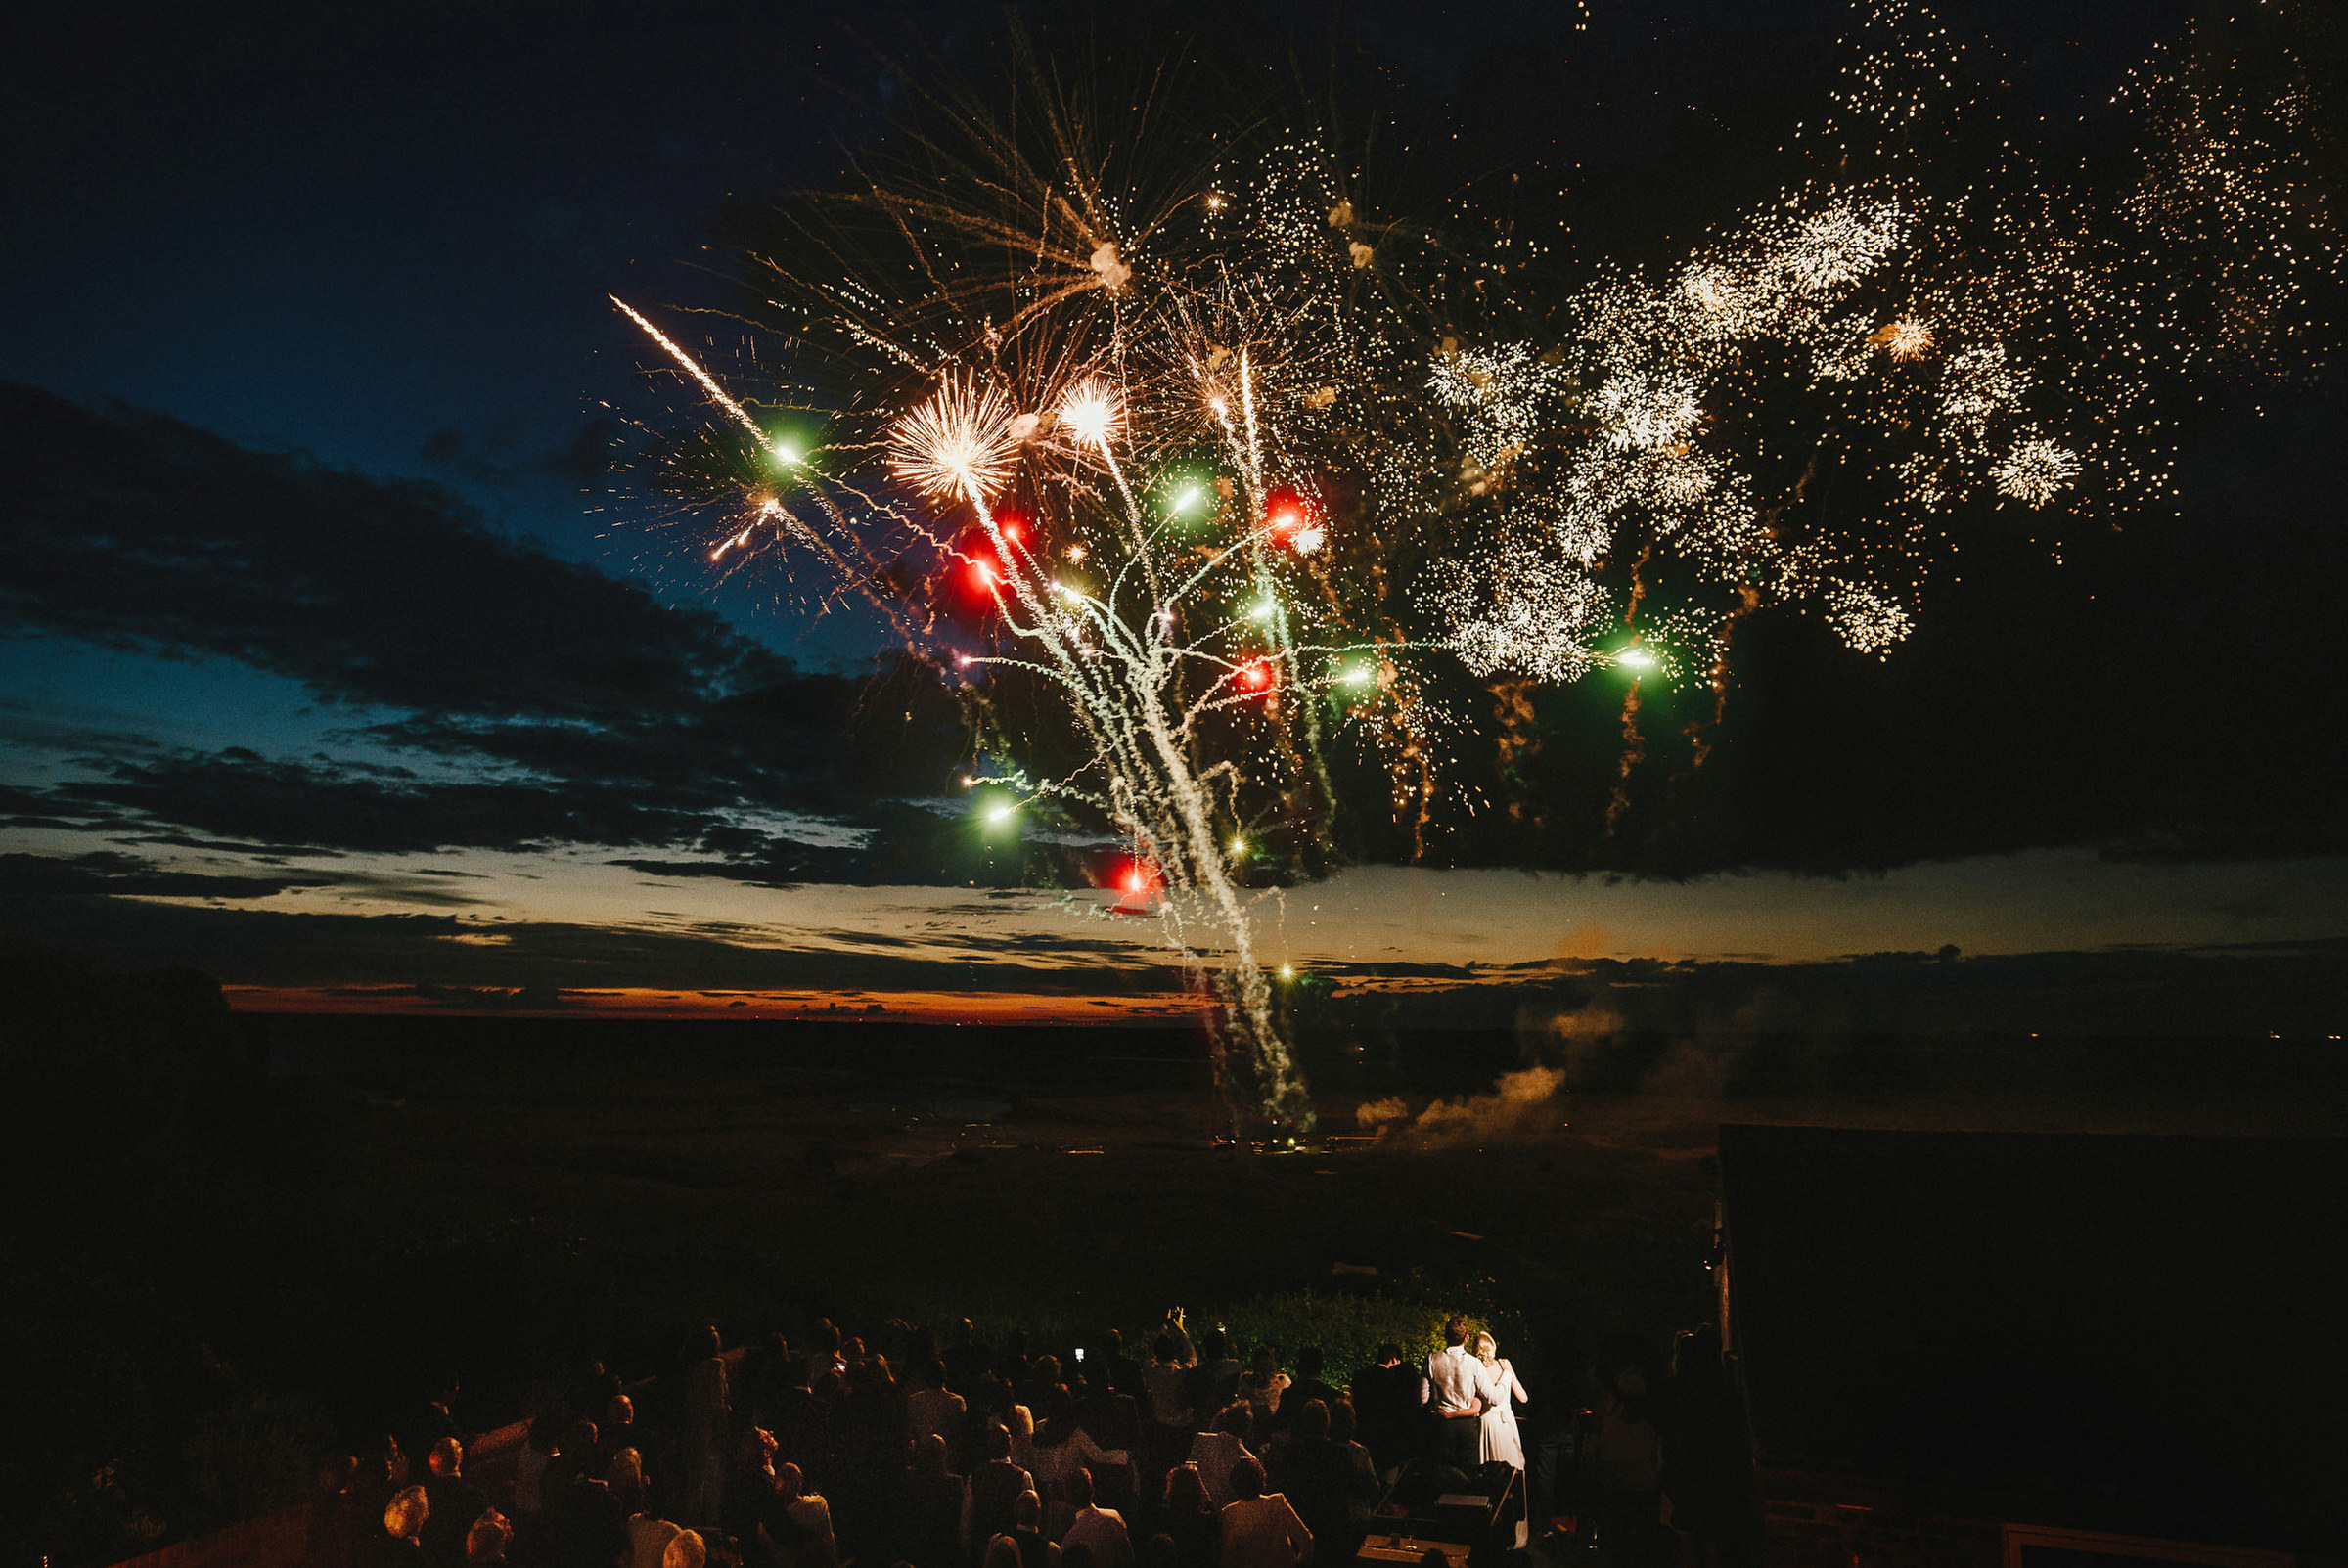 Bride and groom watch fireworks with guests photo by Andy Gaines Photography